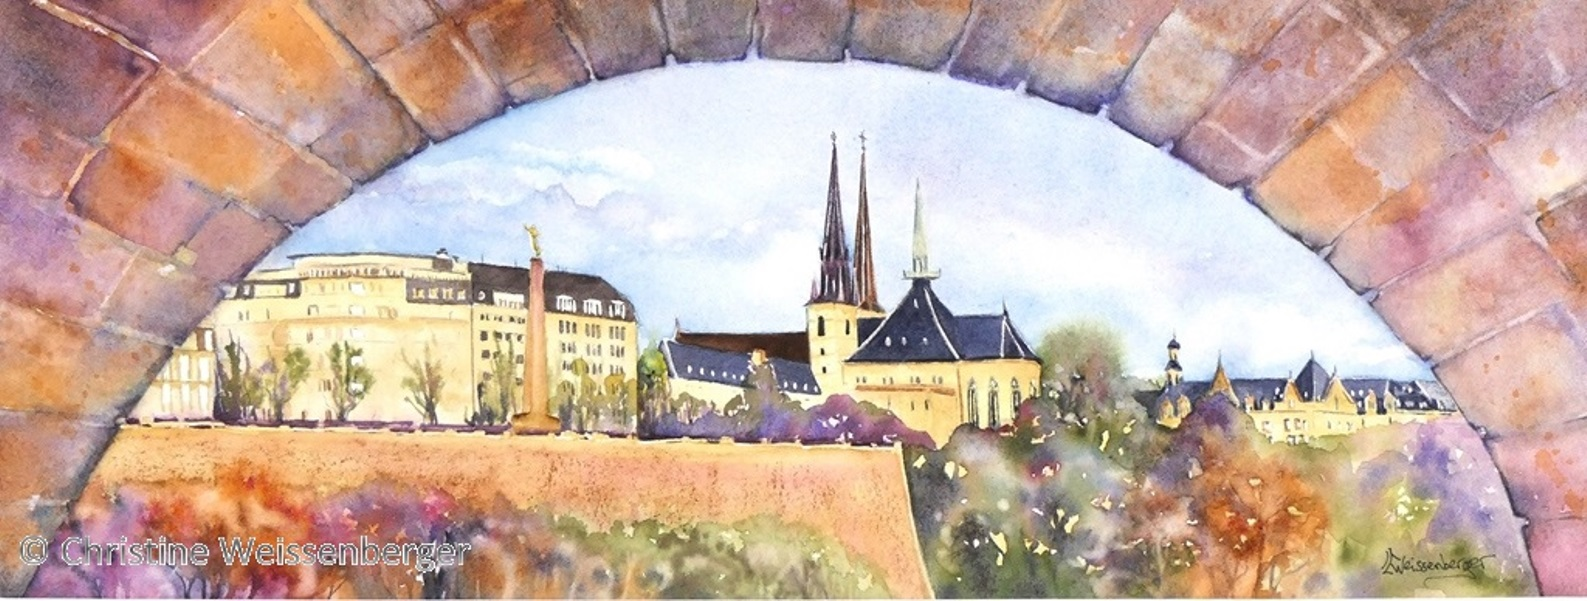 Luxembourg panoramique 2